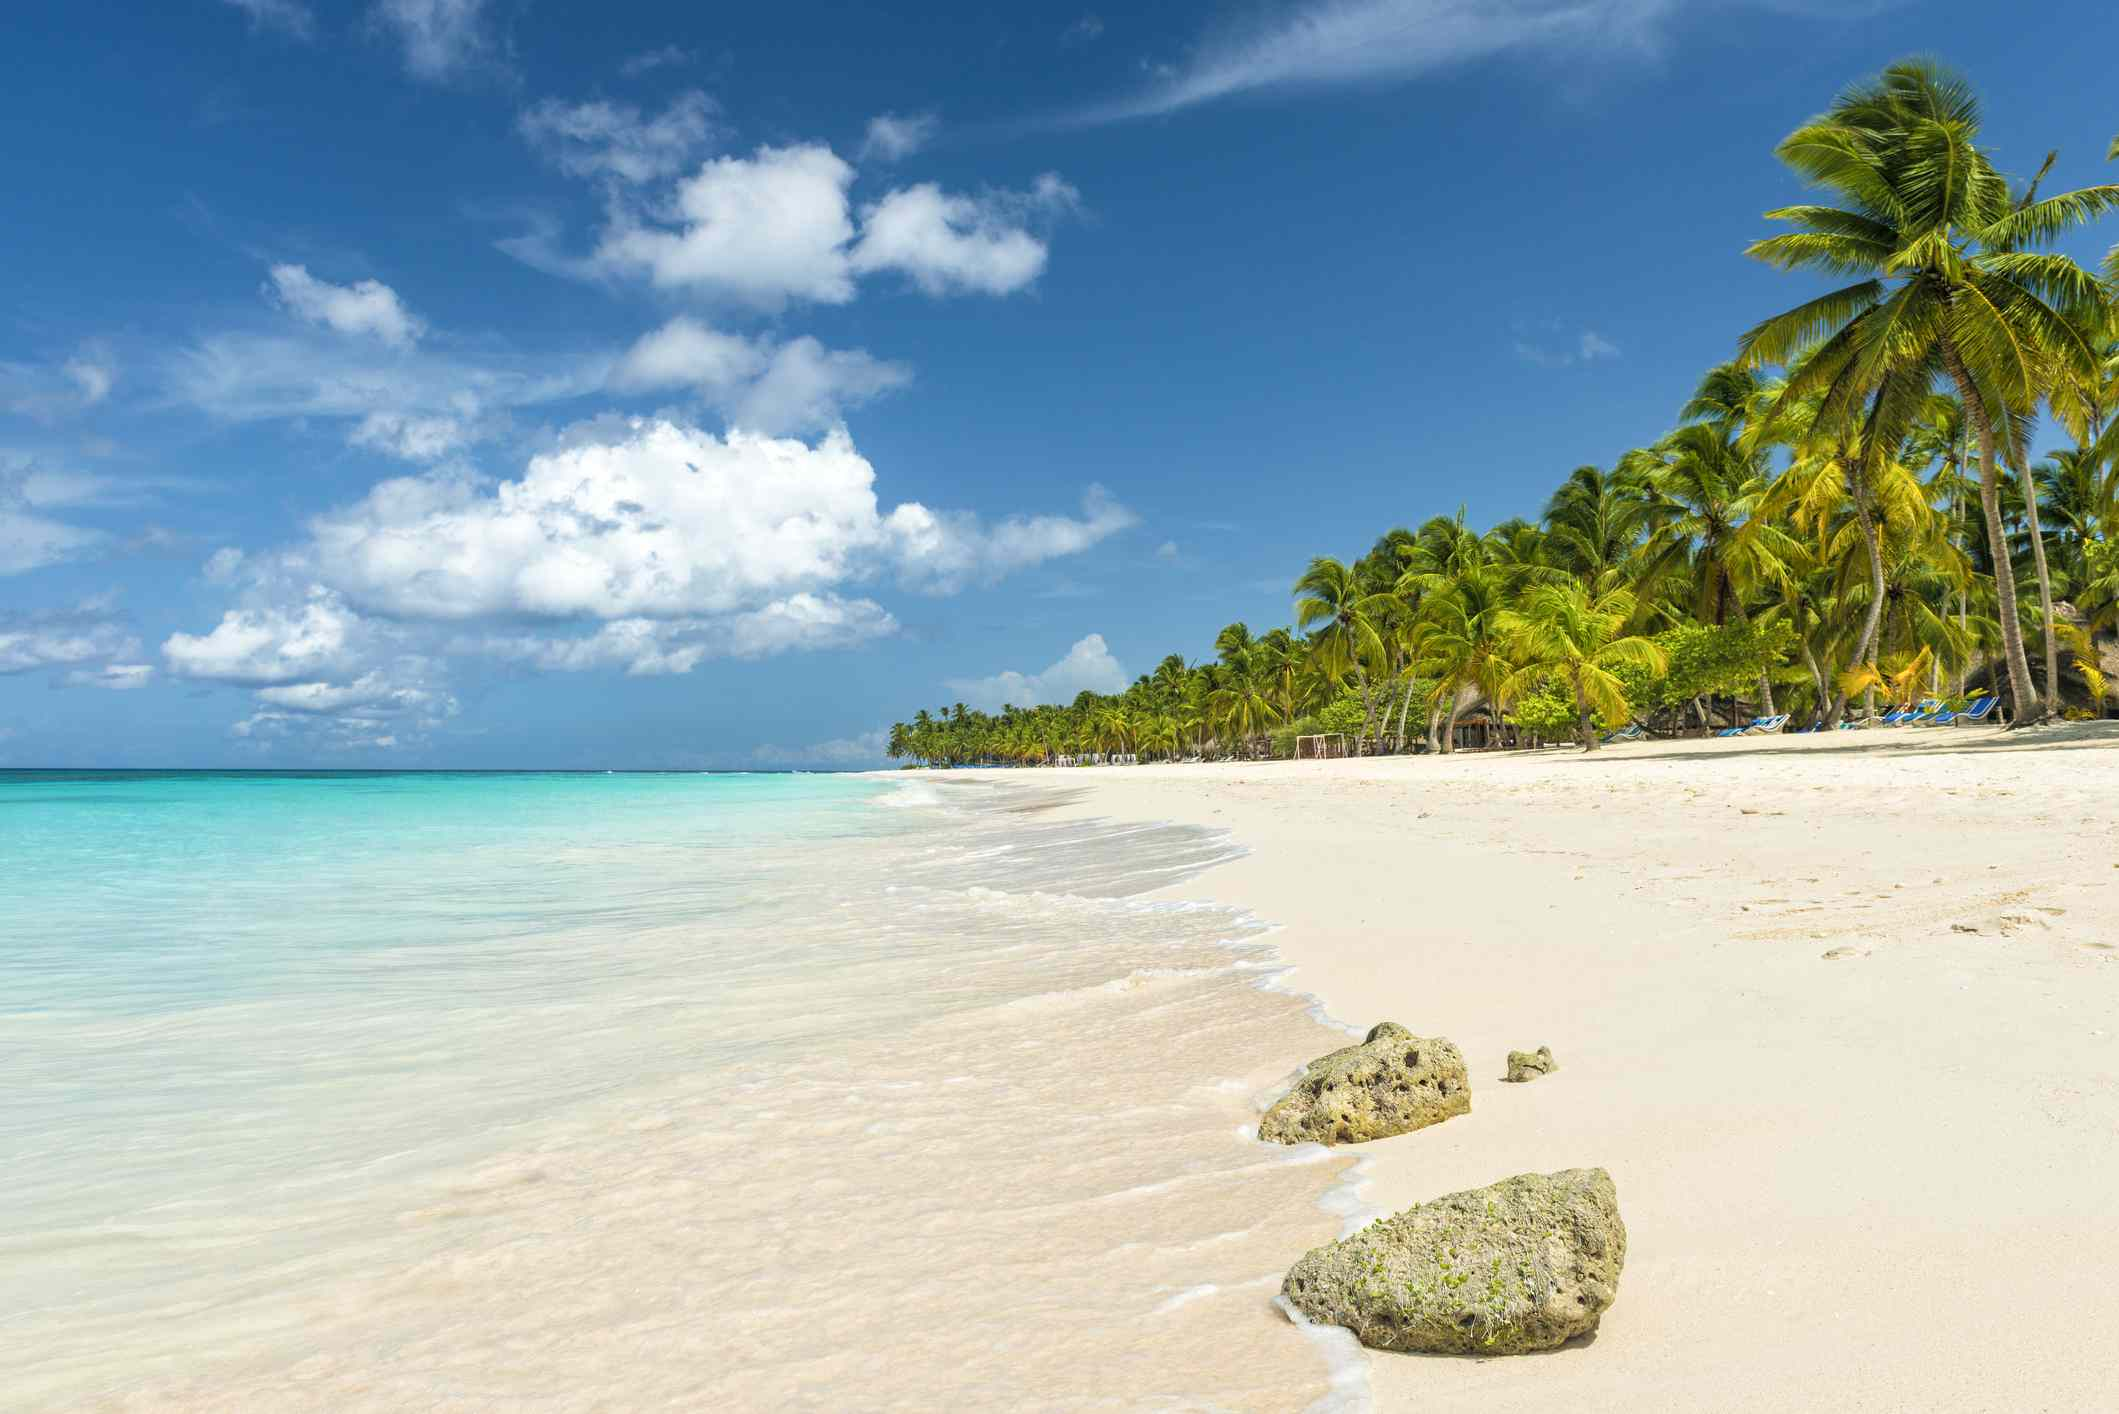 Beautiful beach in the Caribbean ocean and blue sky with some clouds